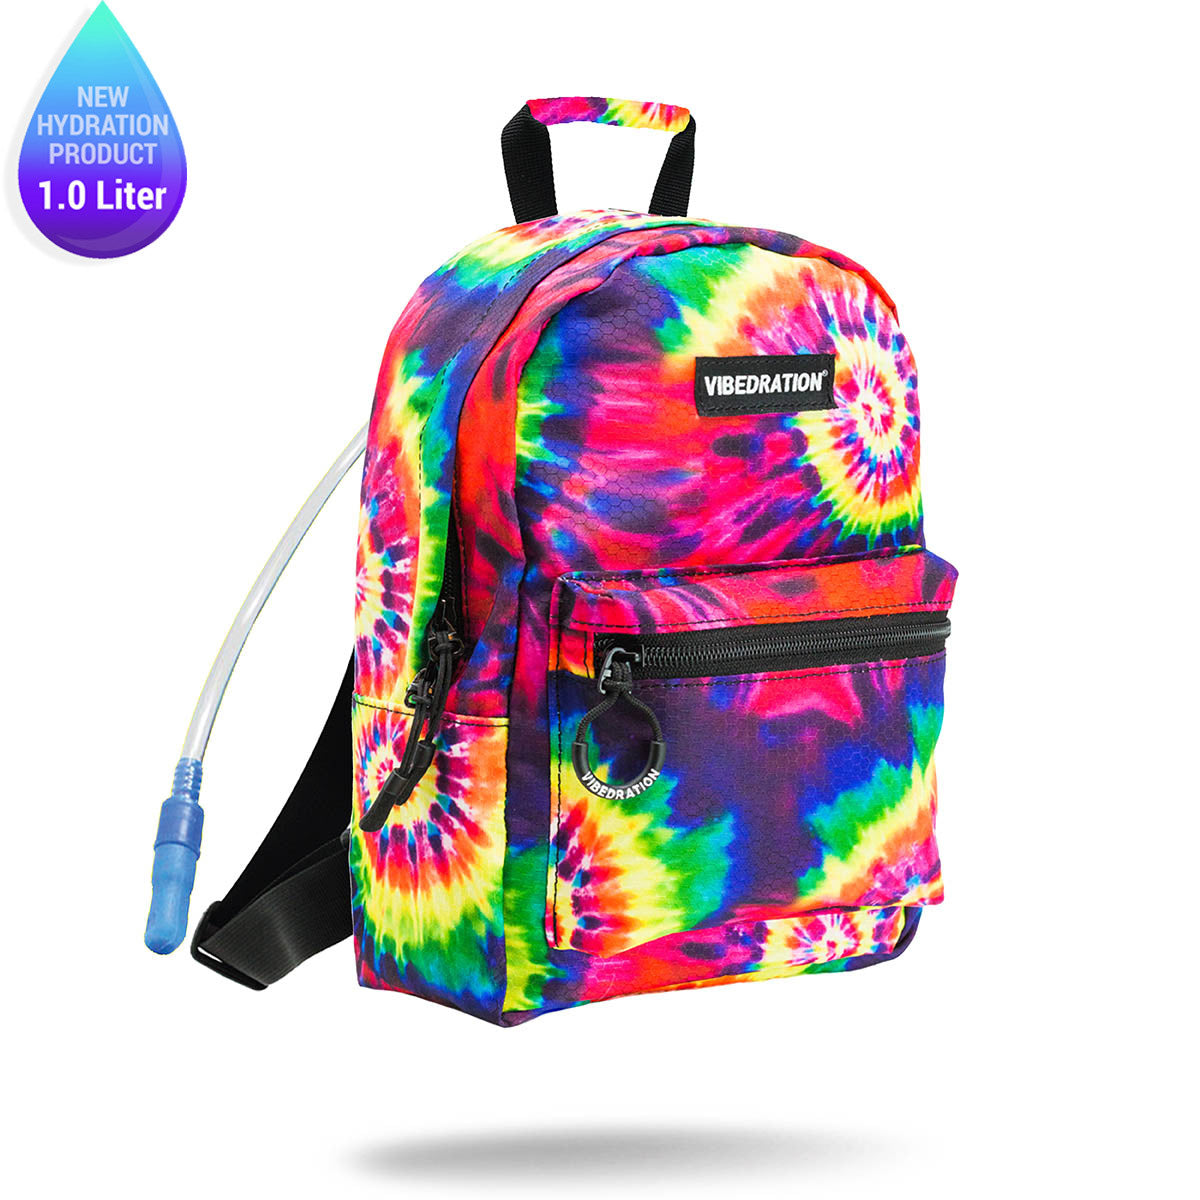 Tie-Dye Printed Mini Backpack with One Liter Water Bladder